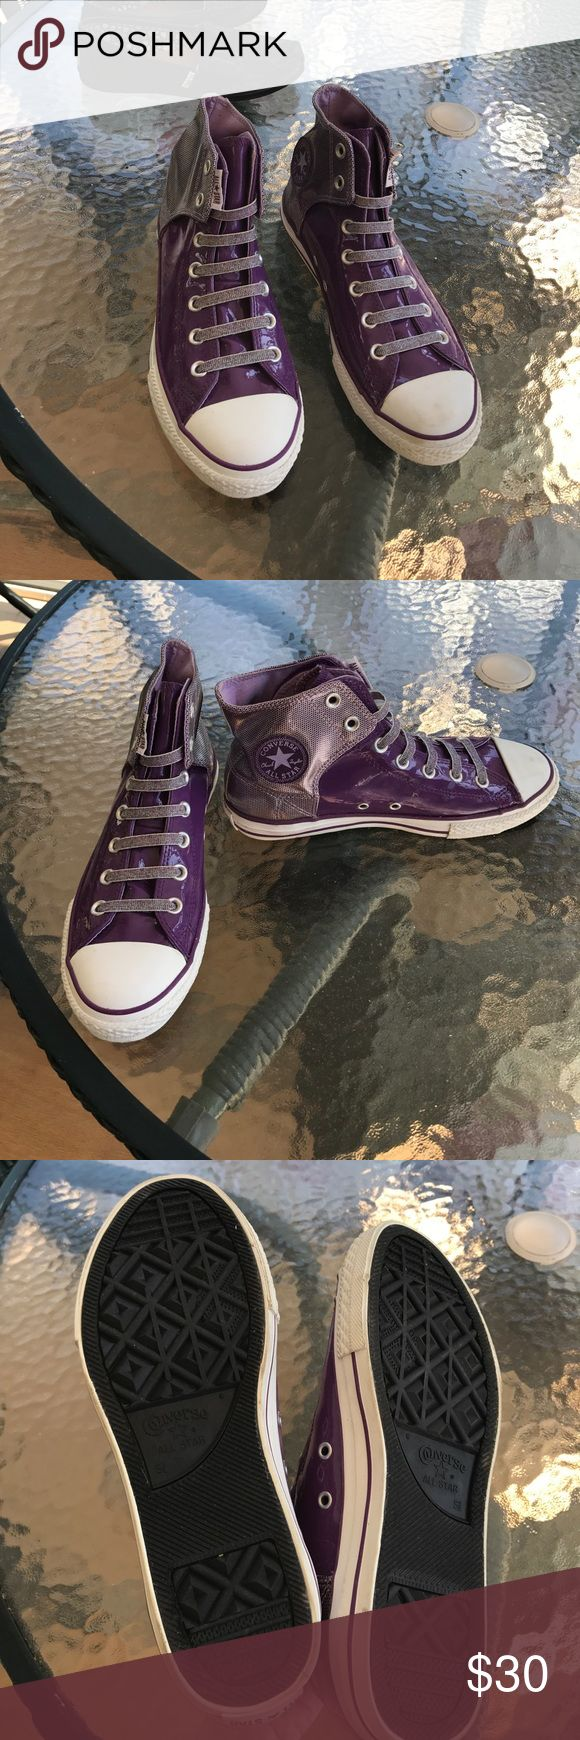 Purple Converse High Tops Worn only once! Purple converse high tops Converse Shoes Sneakers